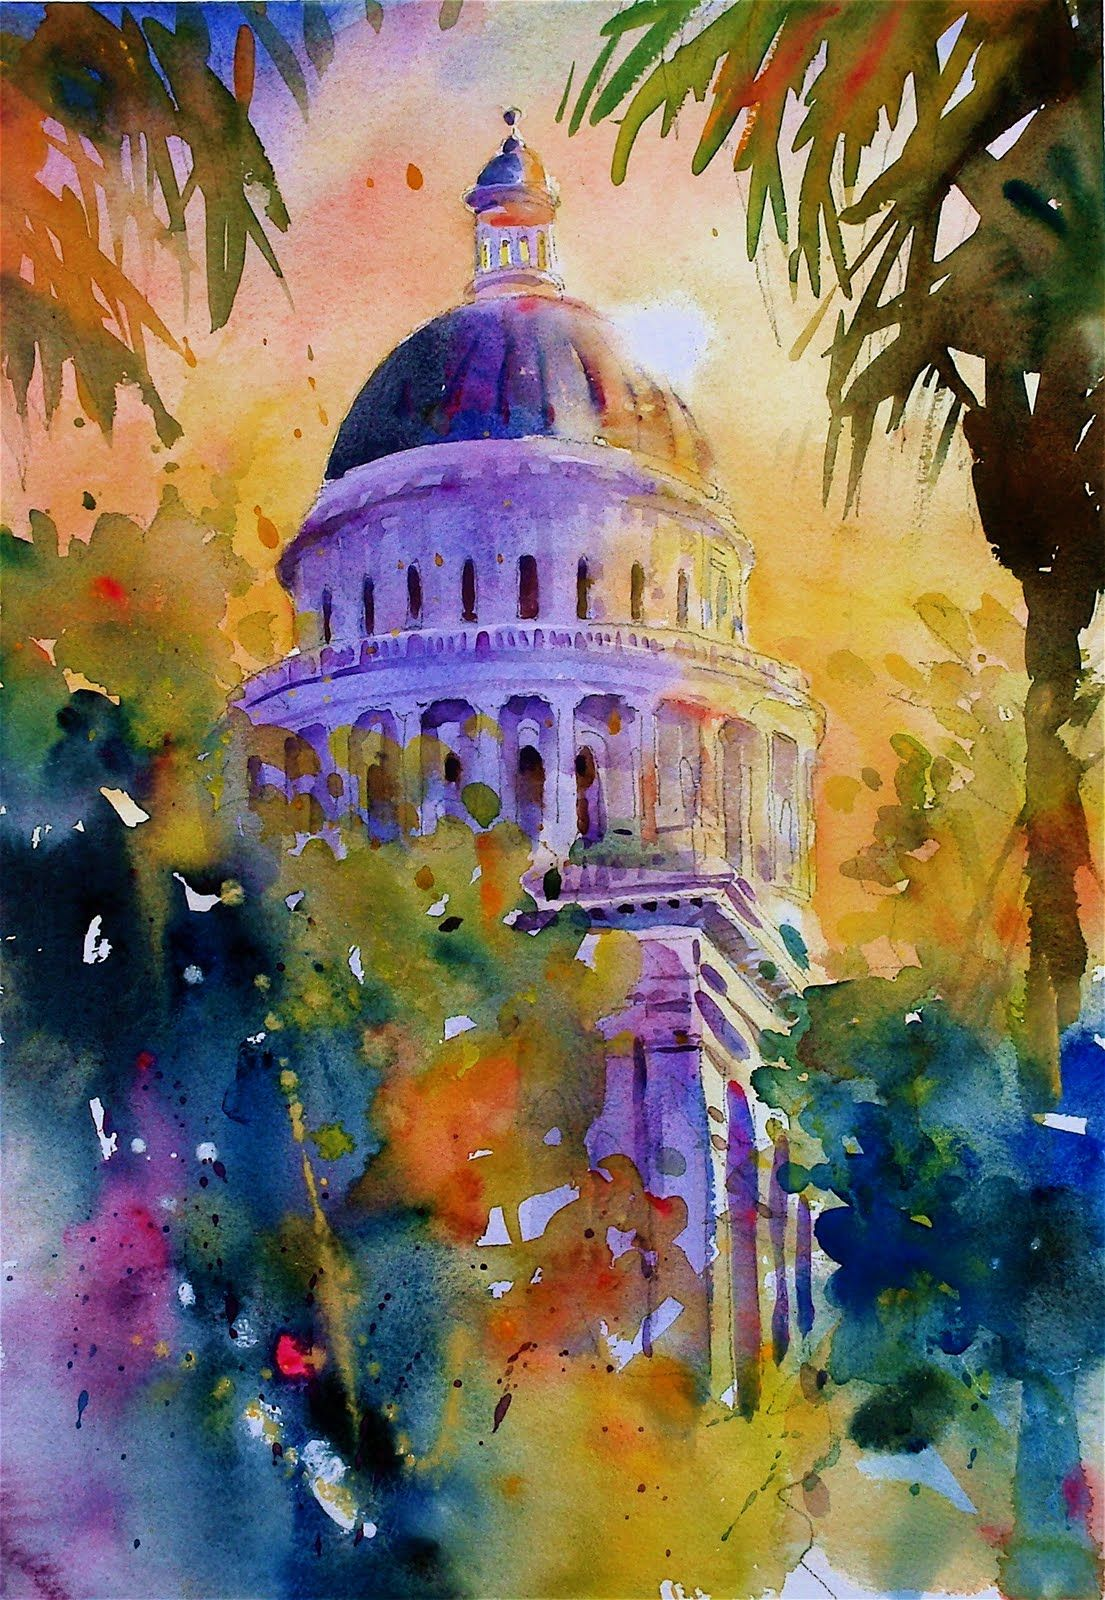 Pinturas Acuarelables David Lobenberg Watercolor Paintings Google Search Art